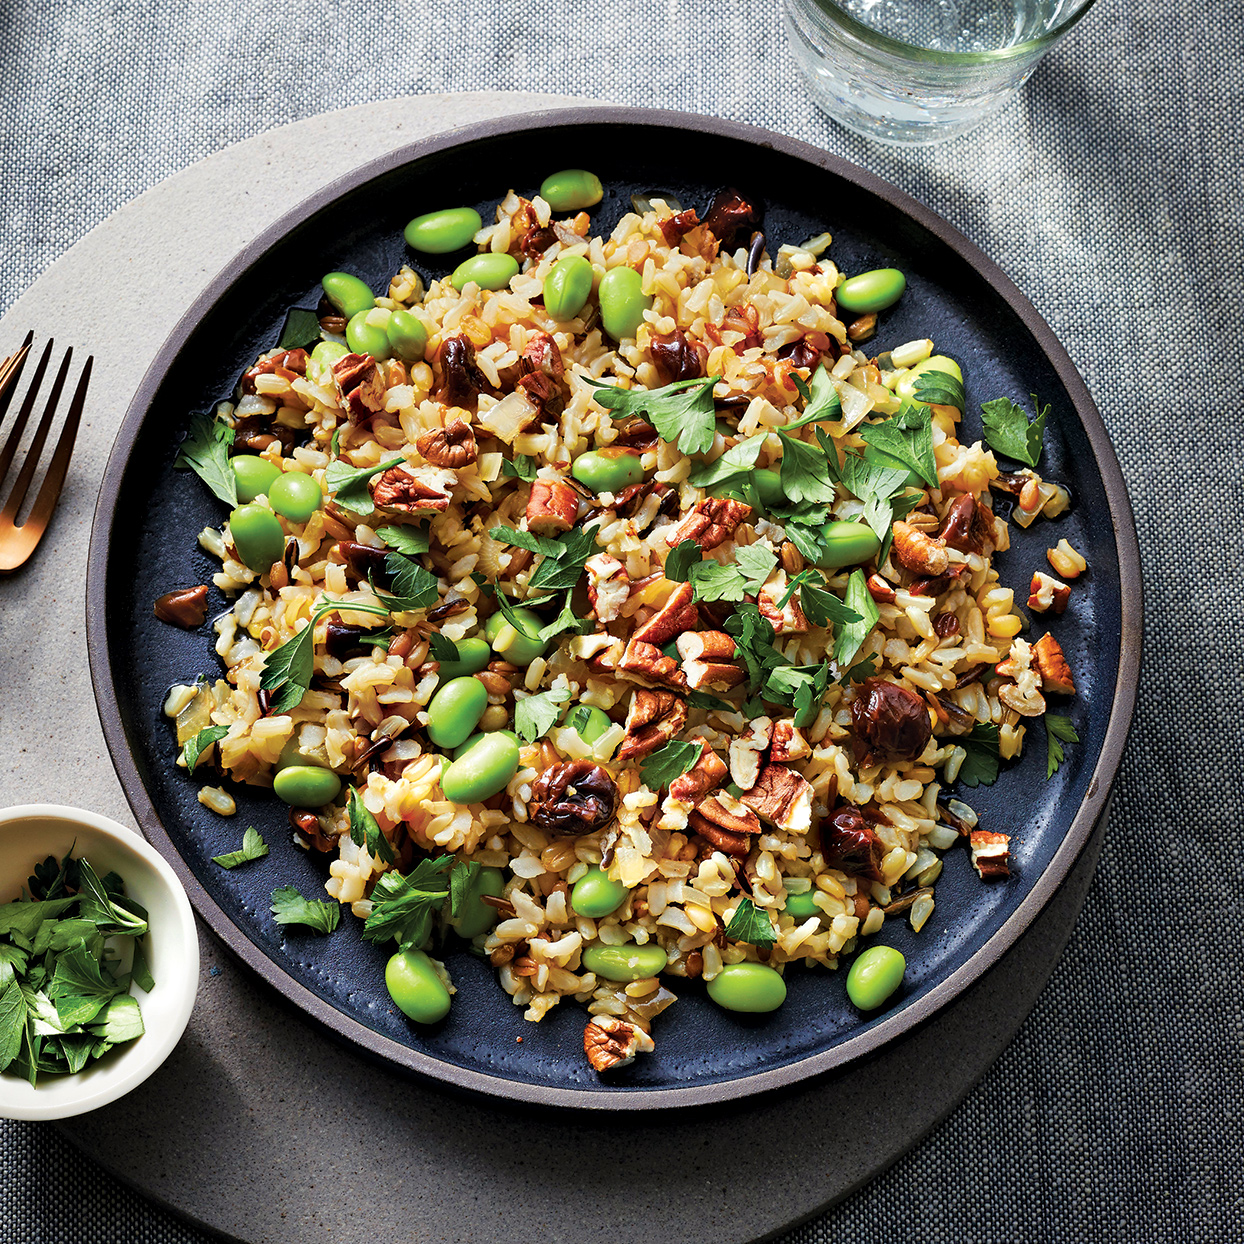 With wild and brown rice, edamame, dried cherries and pecans, this dish boasts varied textures as well as an abundance of nutrients. Wild rice is rich in fiber and protein while brown rice is high in manganese, which helps the body digest fats. Cherries are packed with antioxidants, while pecans are loaded with healthy unsaturated fat.